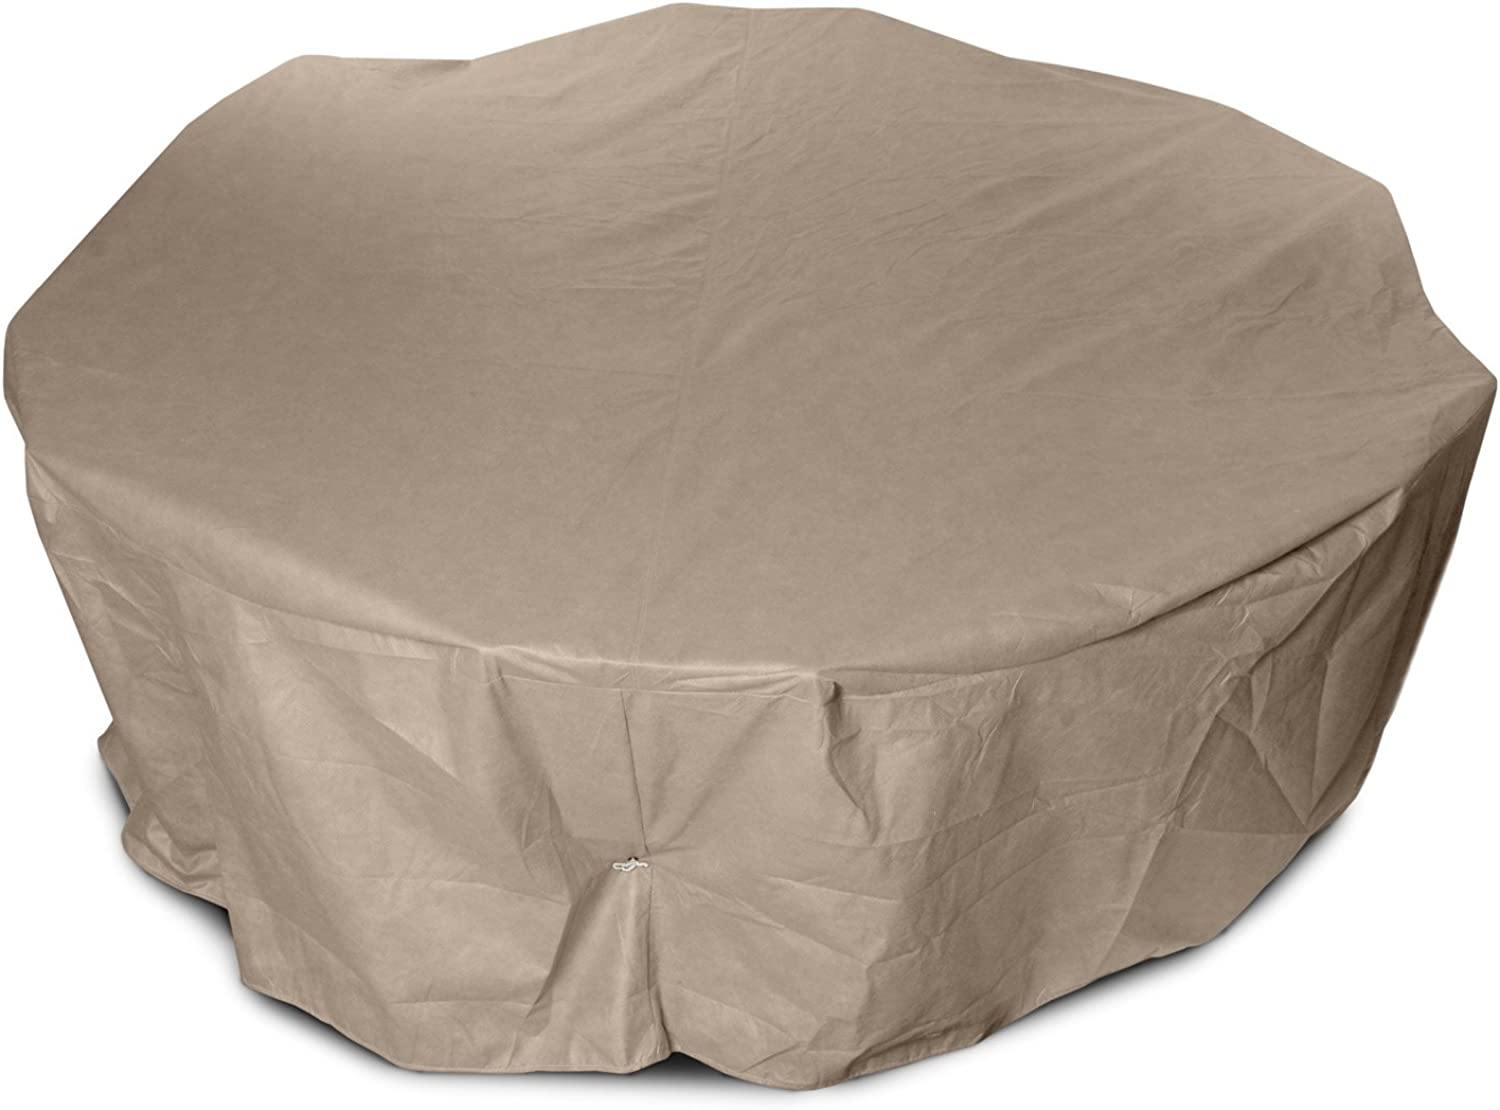 KoverRoos III 31162 54-Inch Round Table High Back Dining Set Cover, 88-Inch Diameter by 36-Inch Height, Taupe